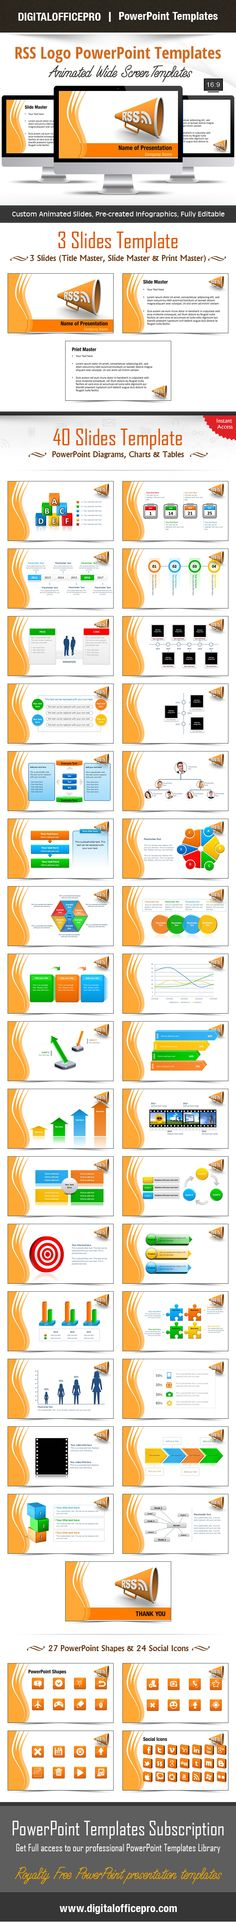 Impress and Engage your audience with RSS Logo PowerPoint Template and RSS Logo PowerPoint Backgrounds from DigitalOfficePro. Each template comes with a set of PowerPoint Diagrams, Charts & Shapes and are available for instant download.